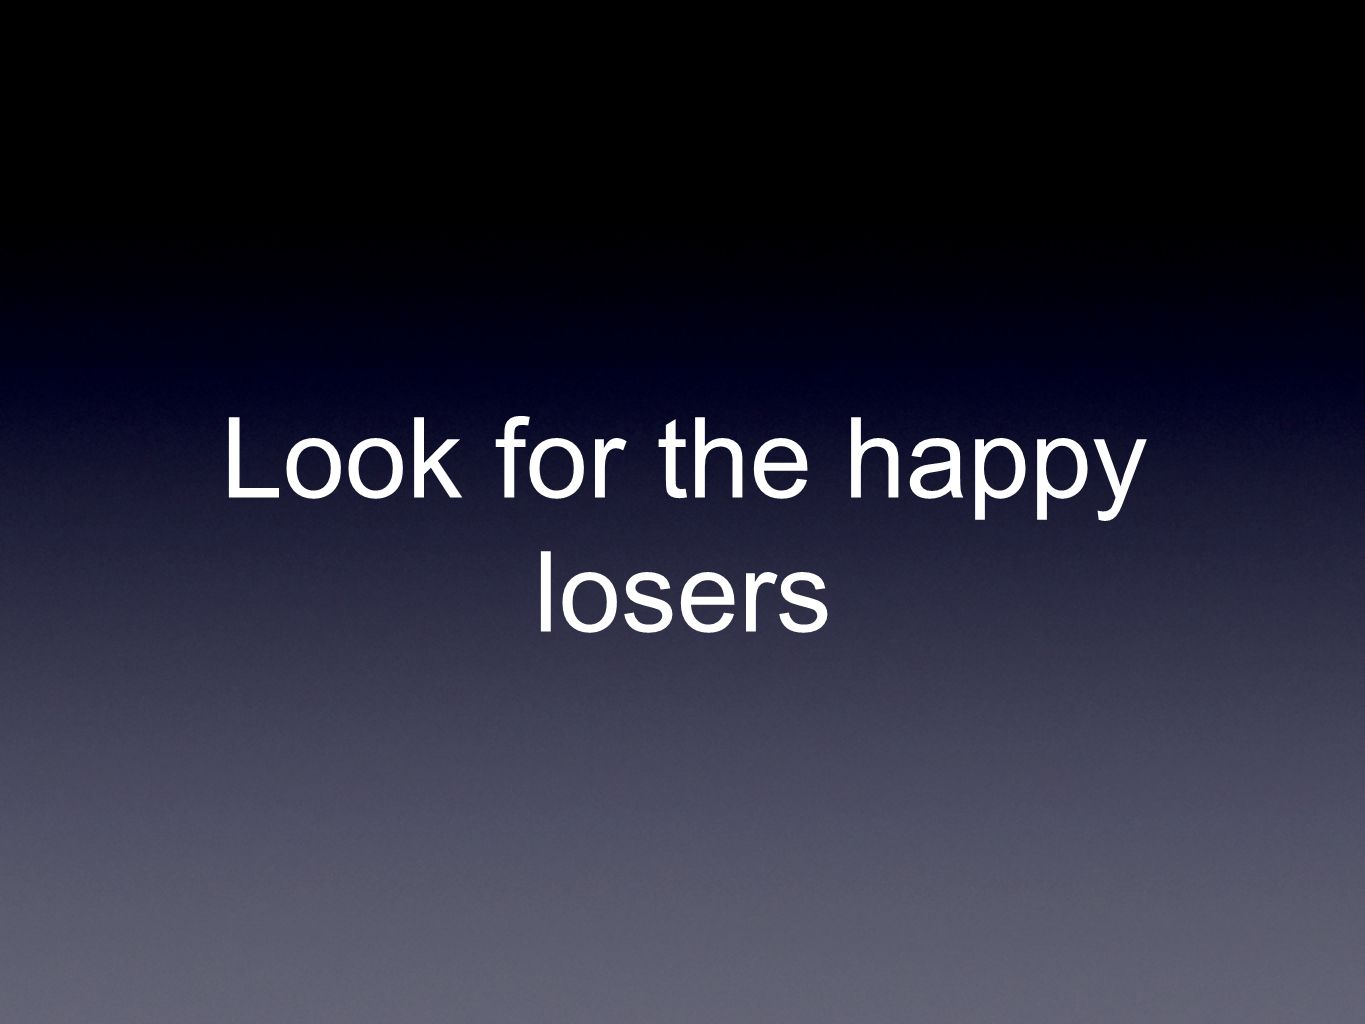 Look for the happy losers